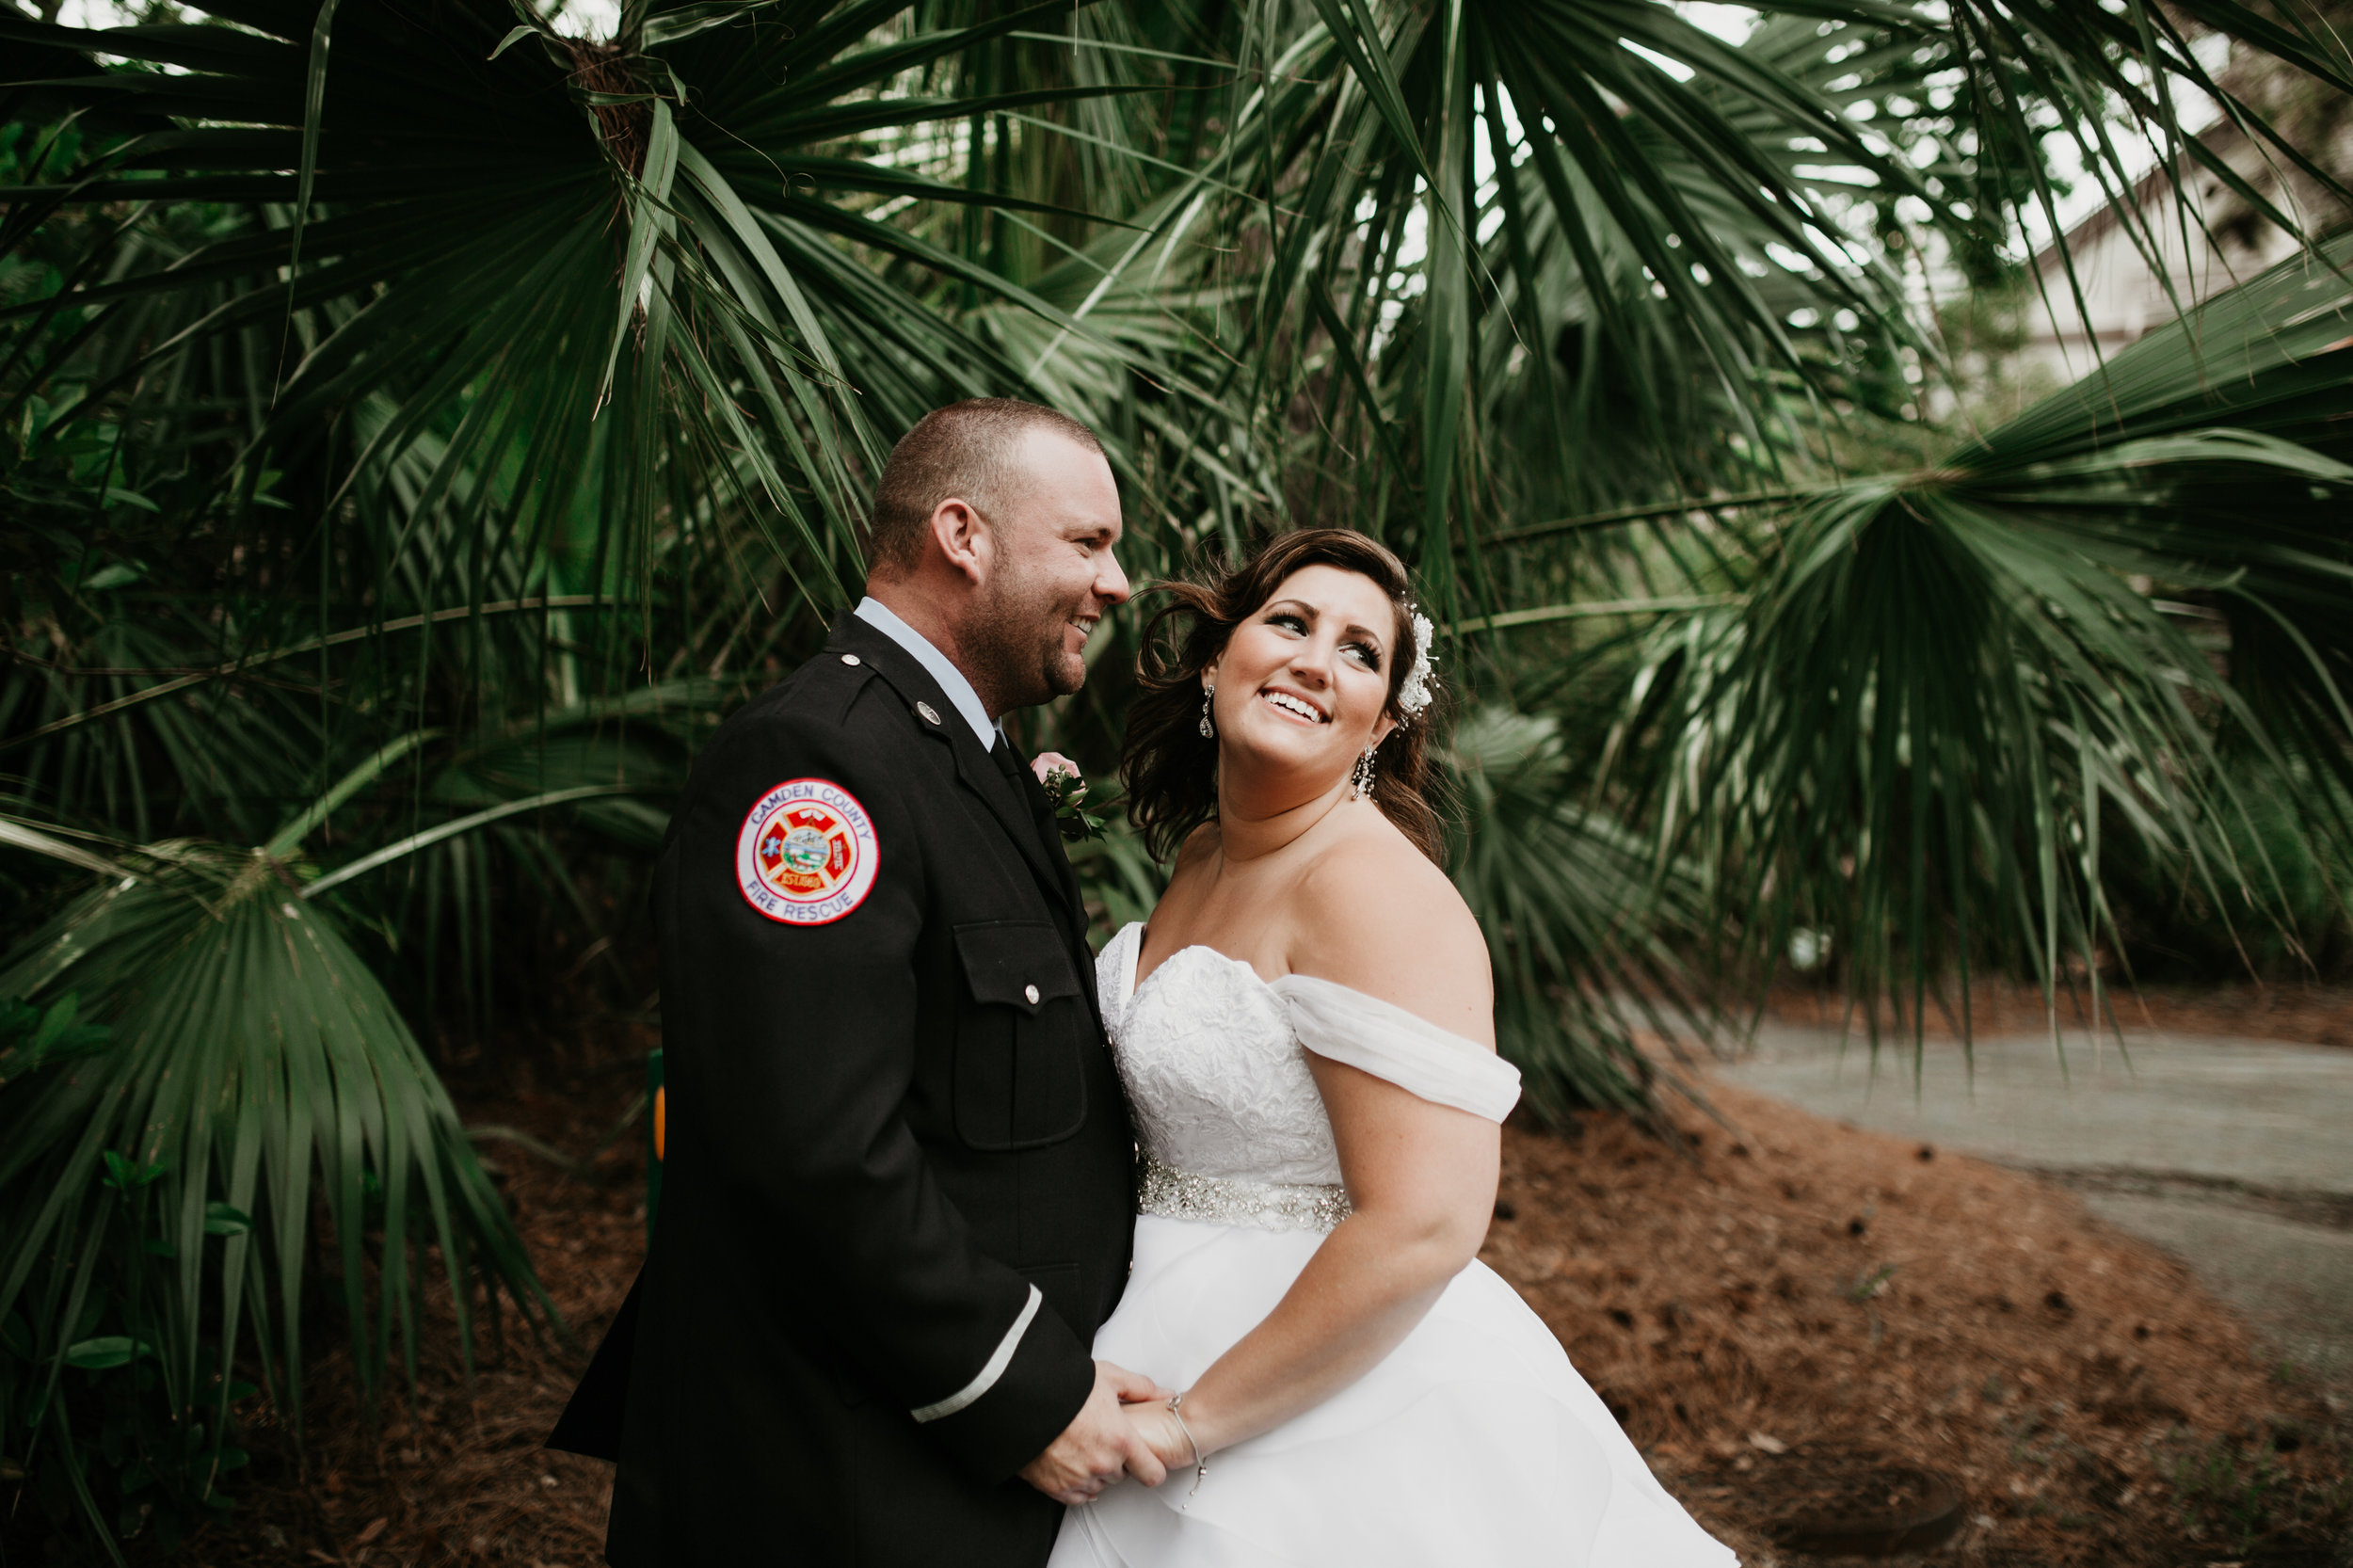 Crystal Ludwick Photo Louisville Kentucky Wedding Photographer (1 of 1)-2.jpg